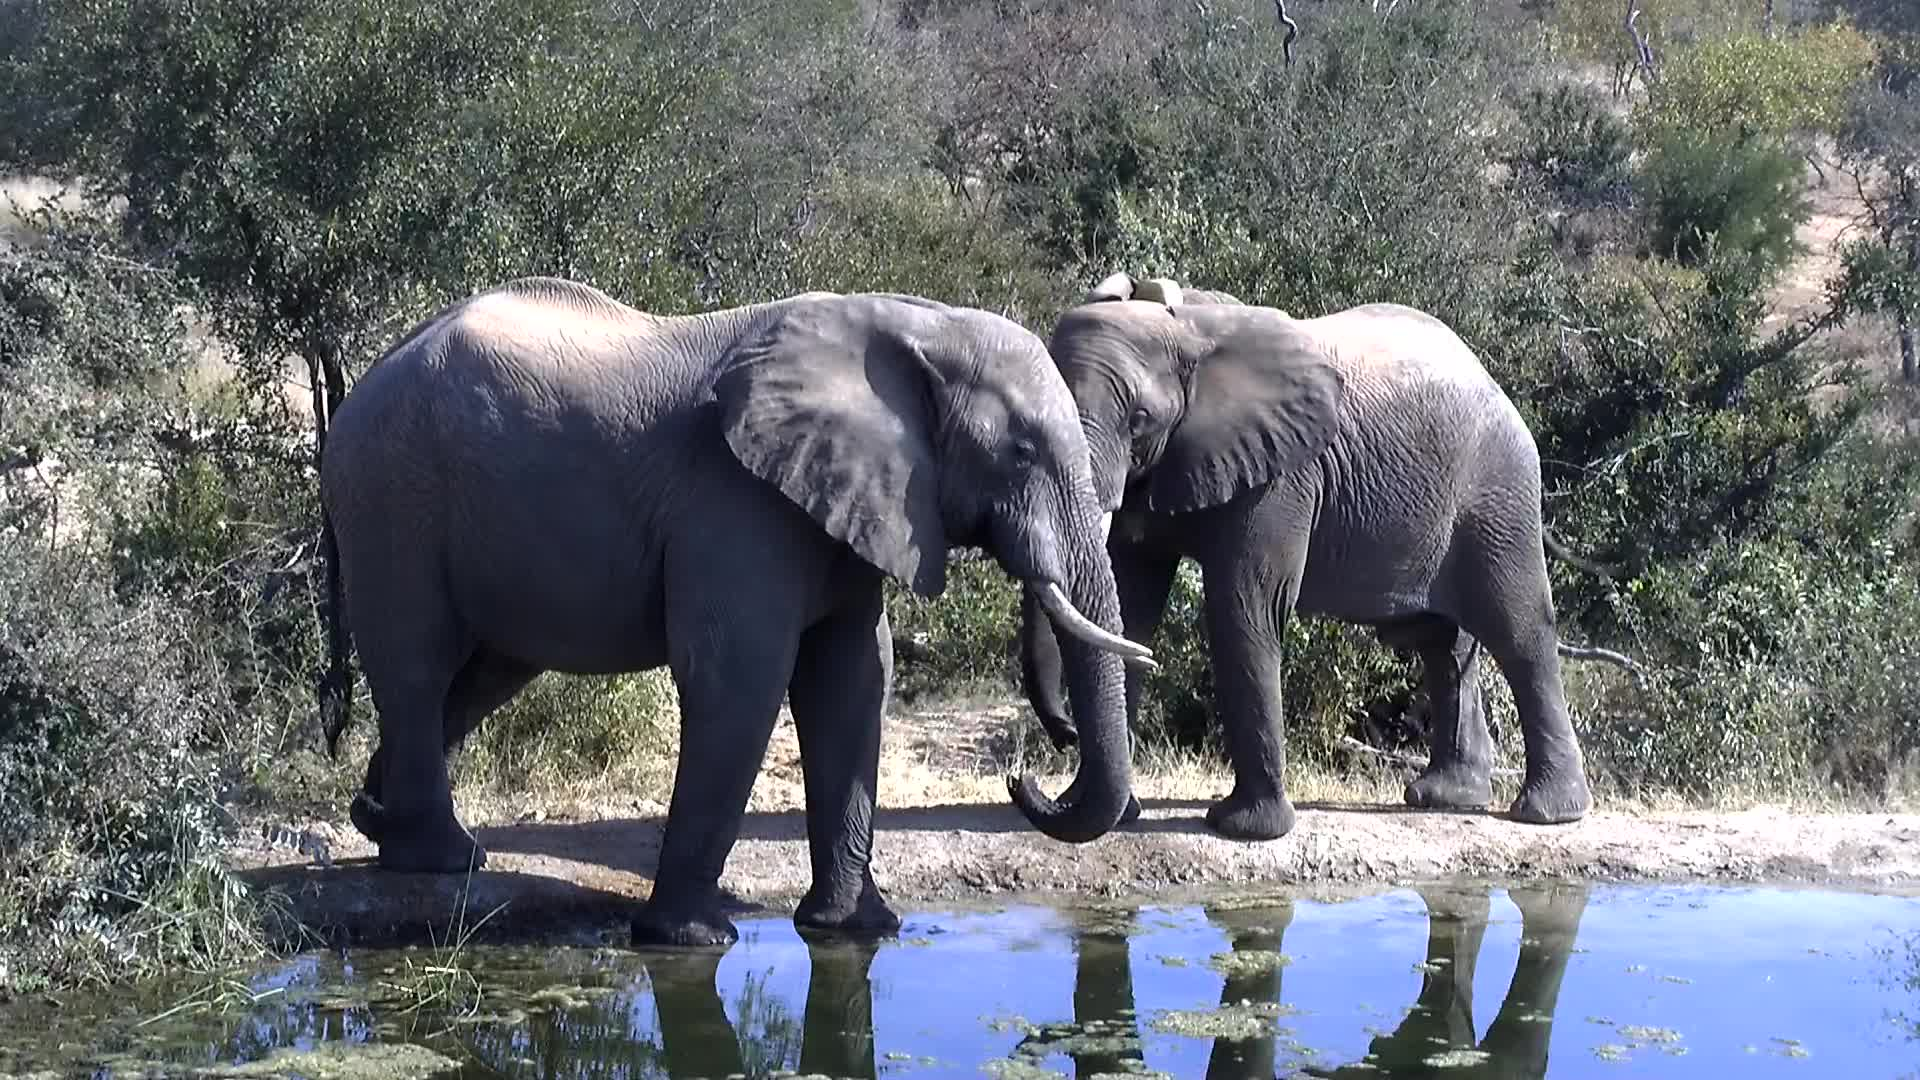 VIDEO: Three elephants come to drink